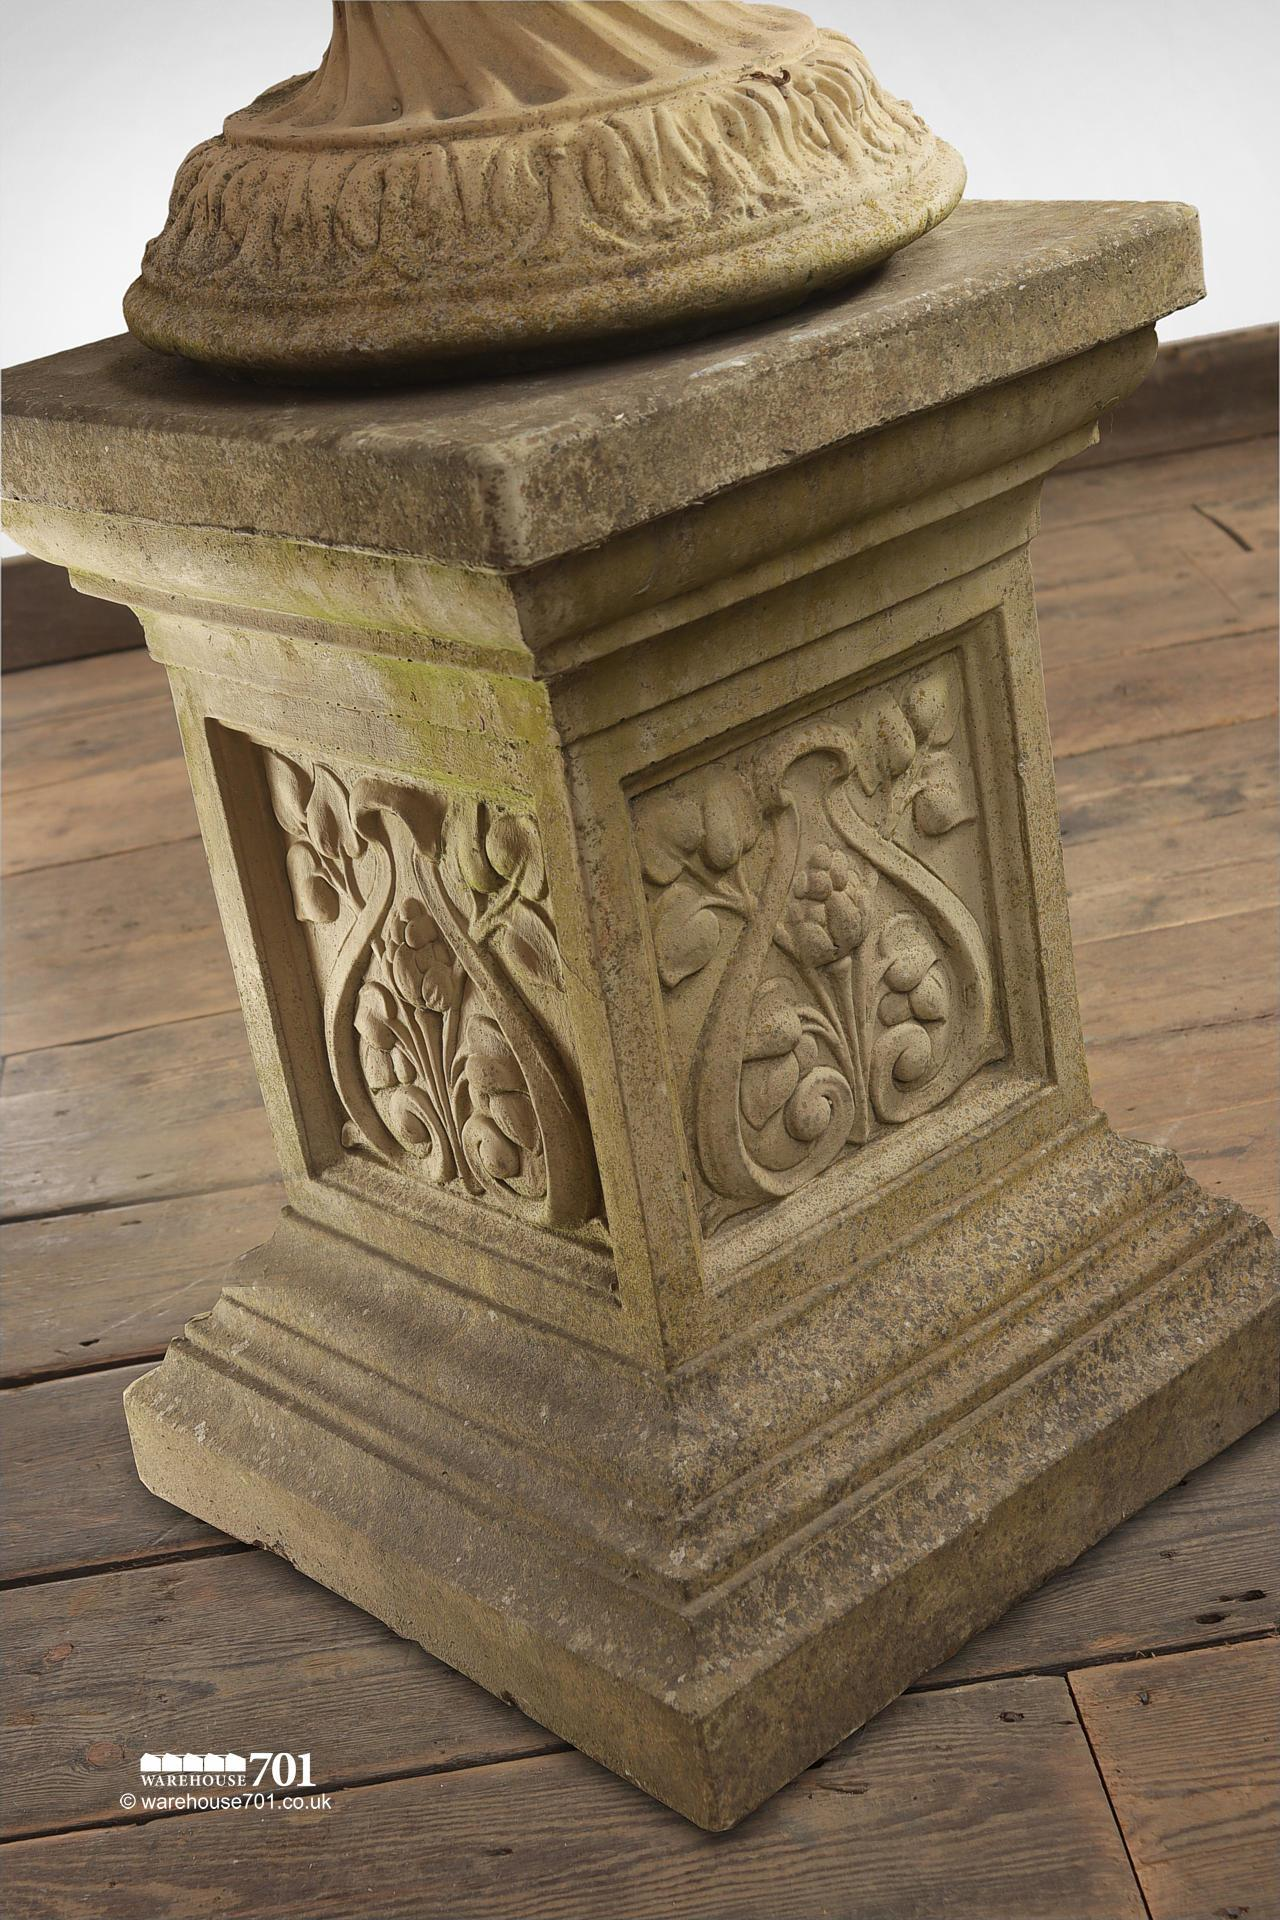 Pair of composite Floral Stone Urns on Plinths #4